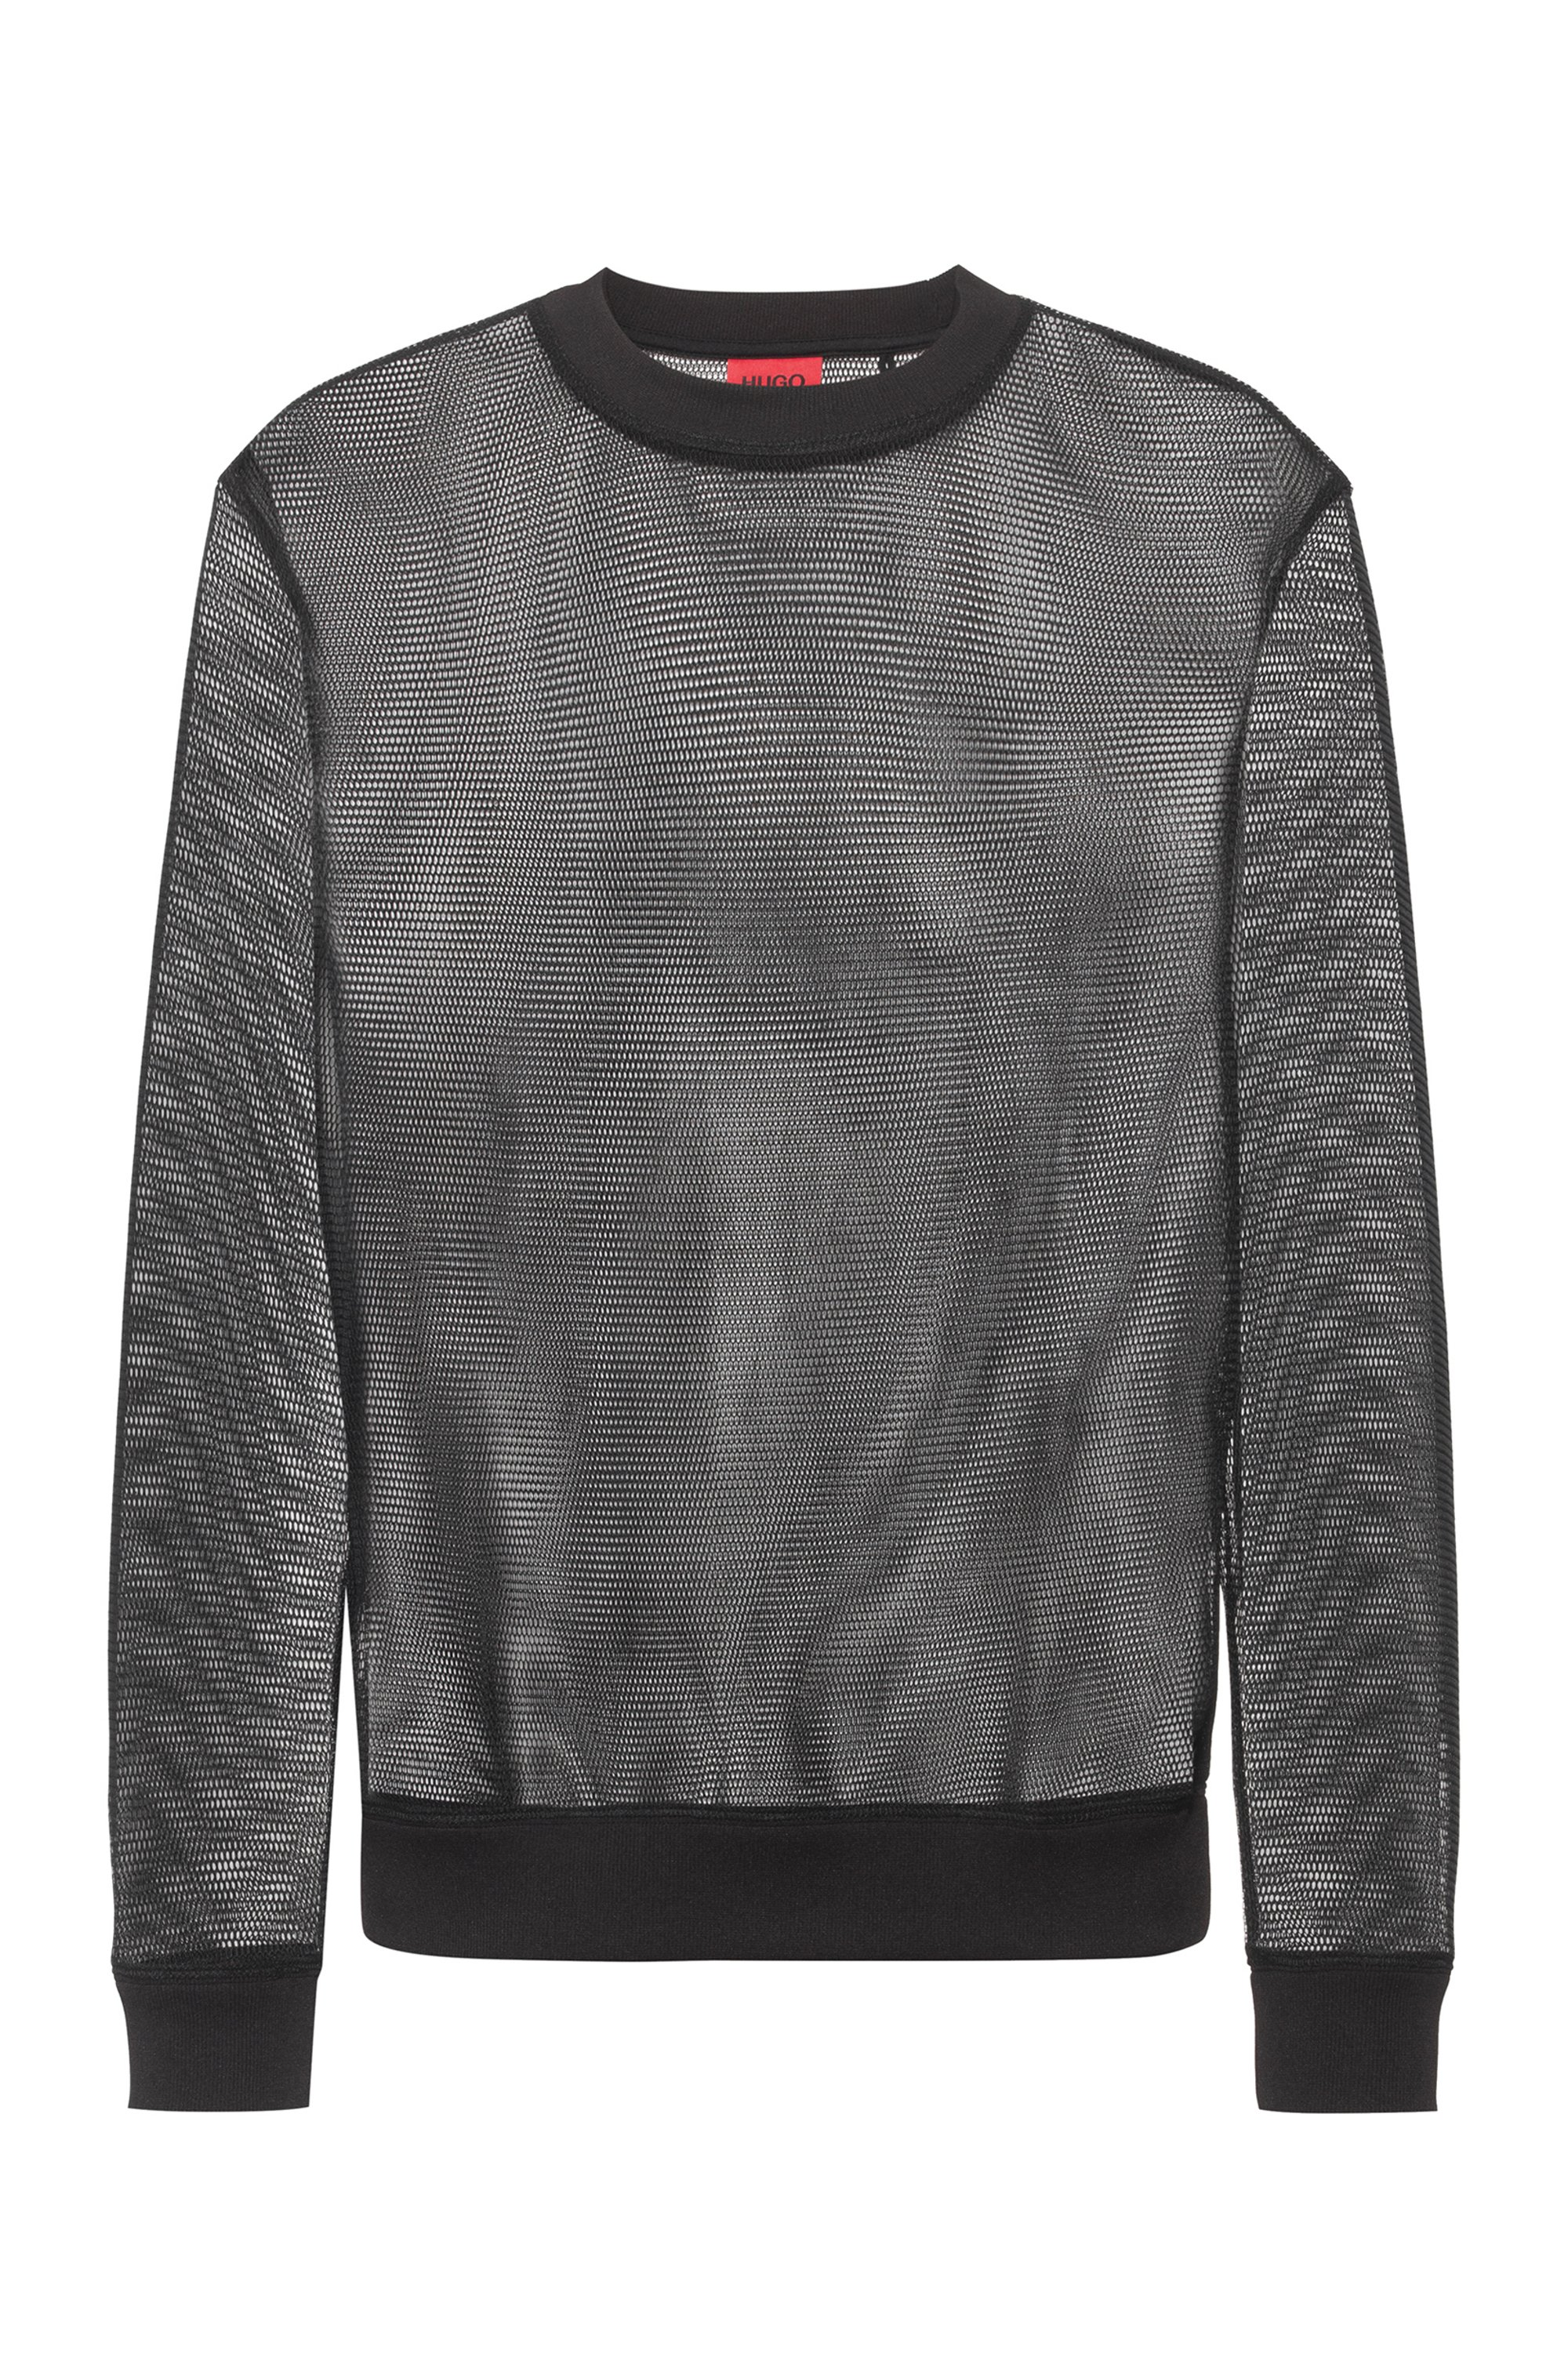 Regular-fit sweatshirt in transparent mesh, Black